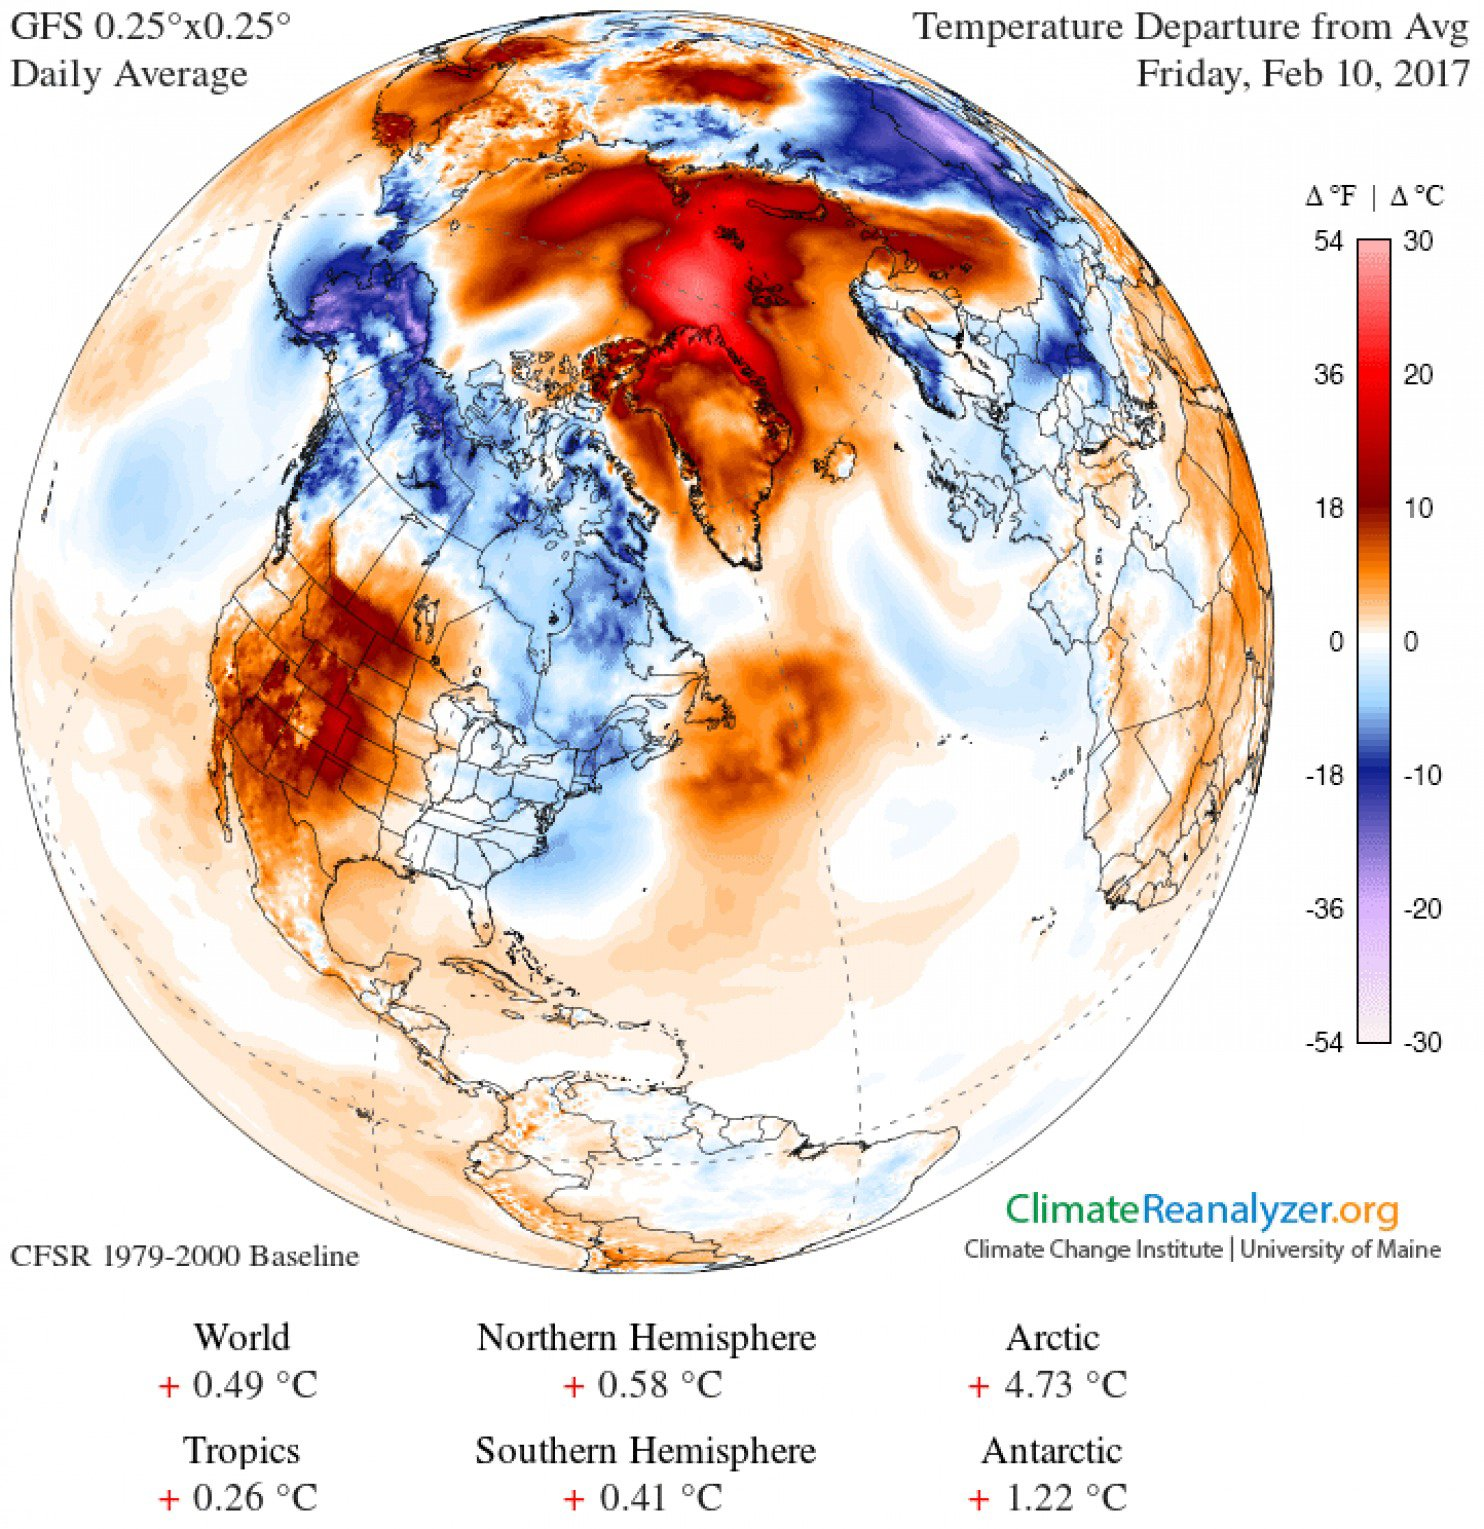 Temperatures in the Arctic are skyrocketing — for the third time this winter